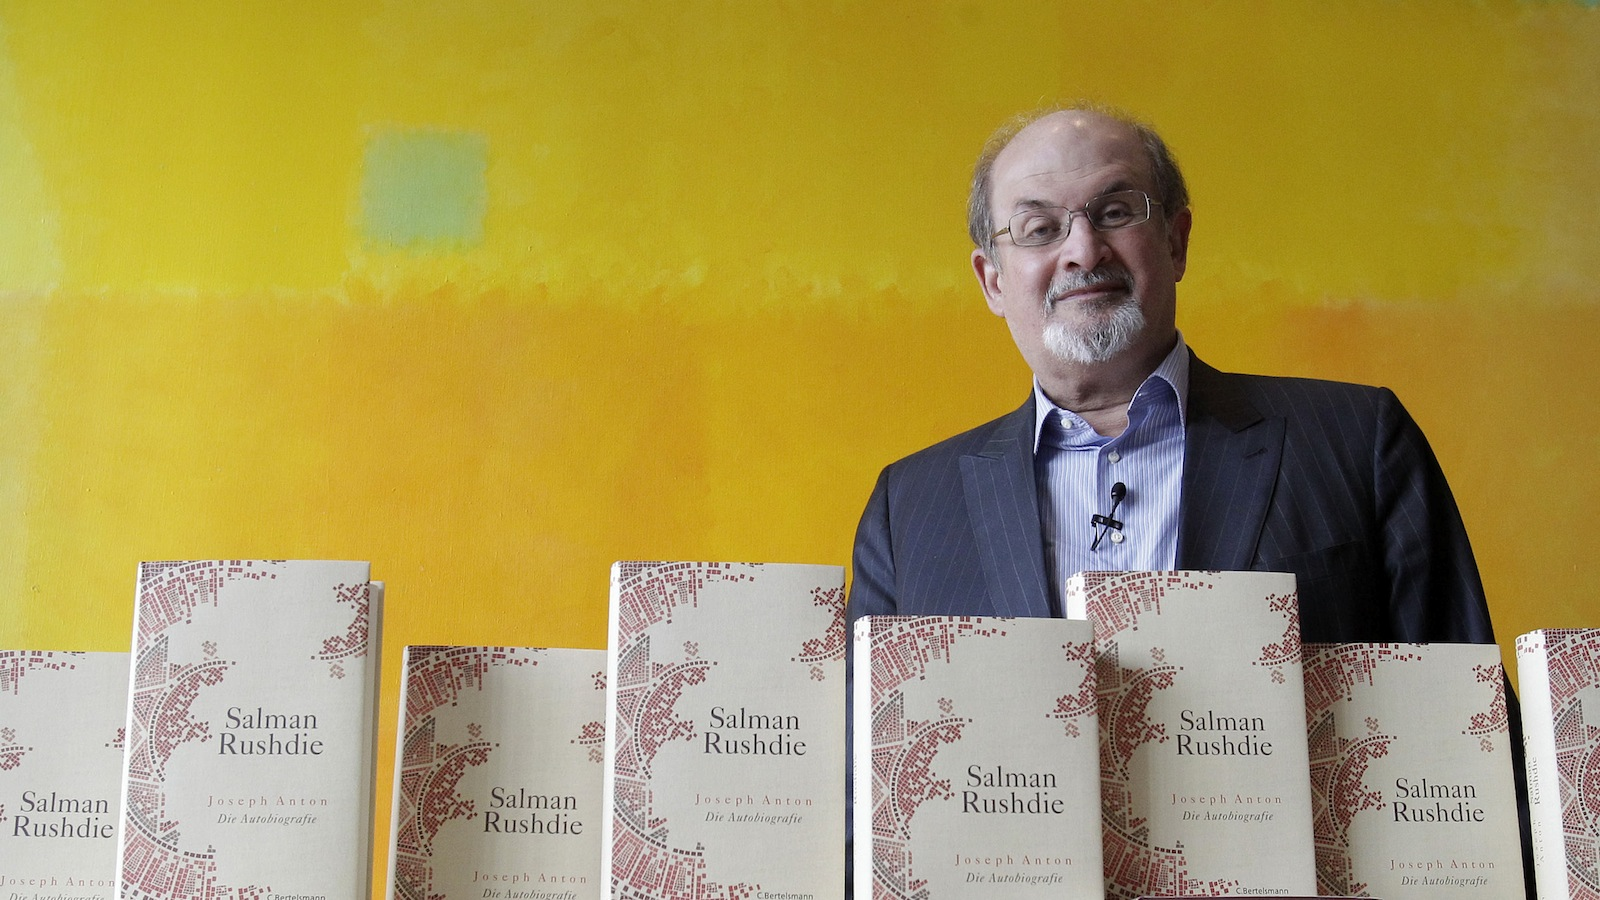 """Author Salman Rushdie presents of his auto-biography """"Joseph Anton"""" during a promotional event in Berlin October 1, 2012. REUTERS/Tobias Schwarz"""